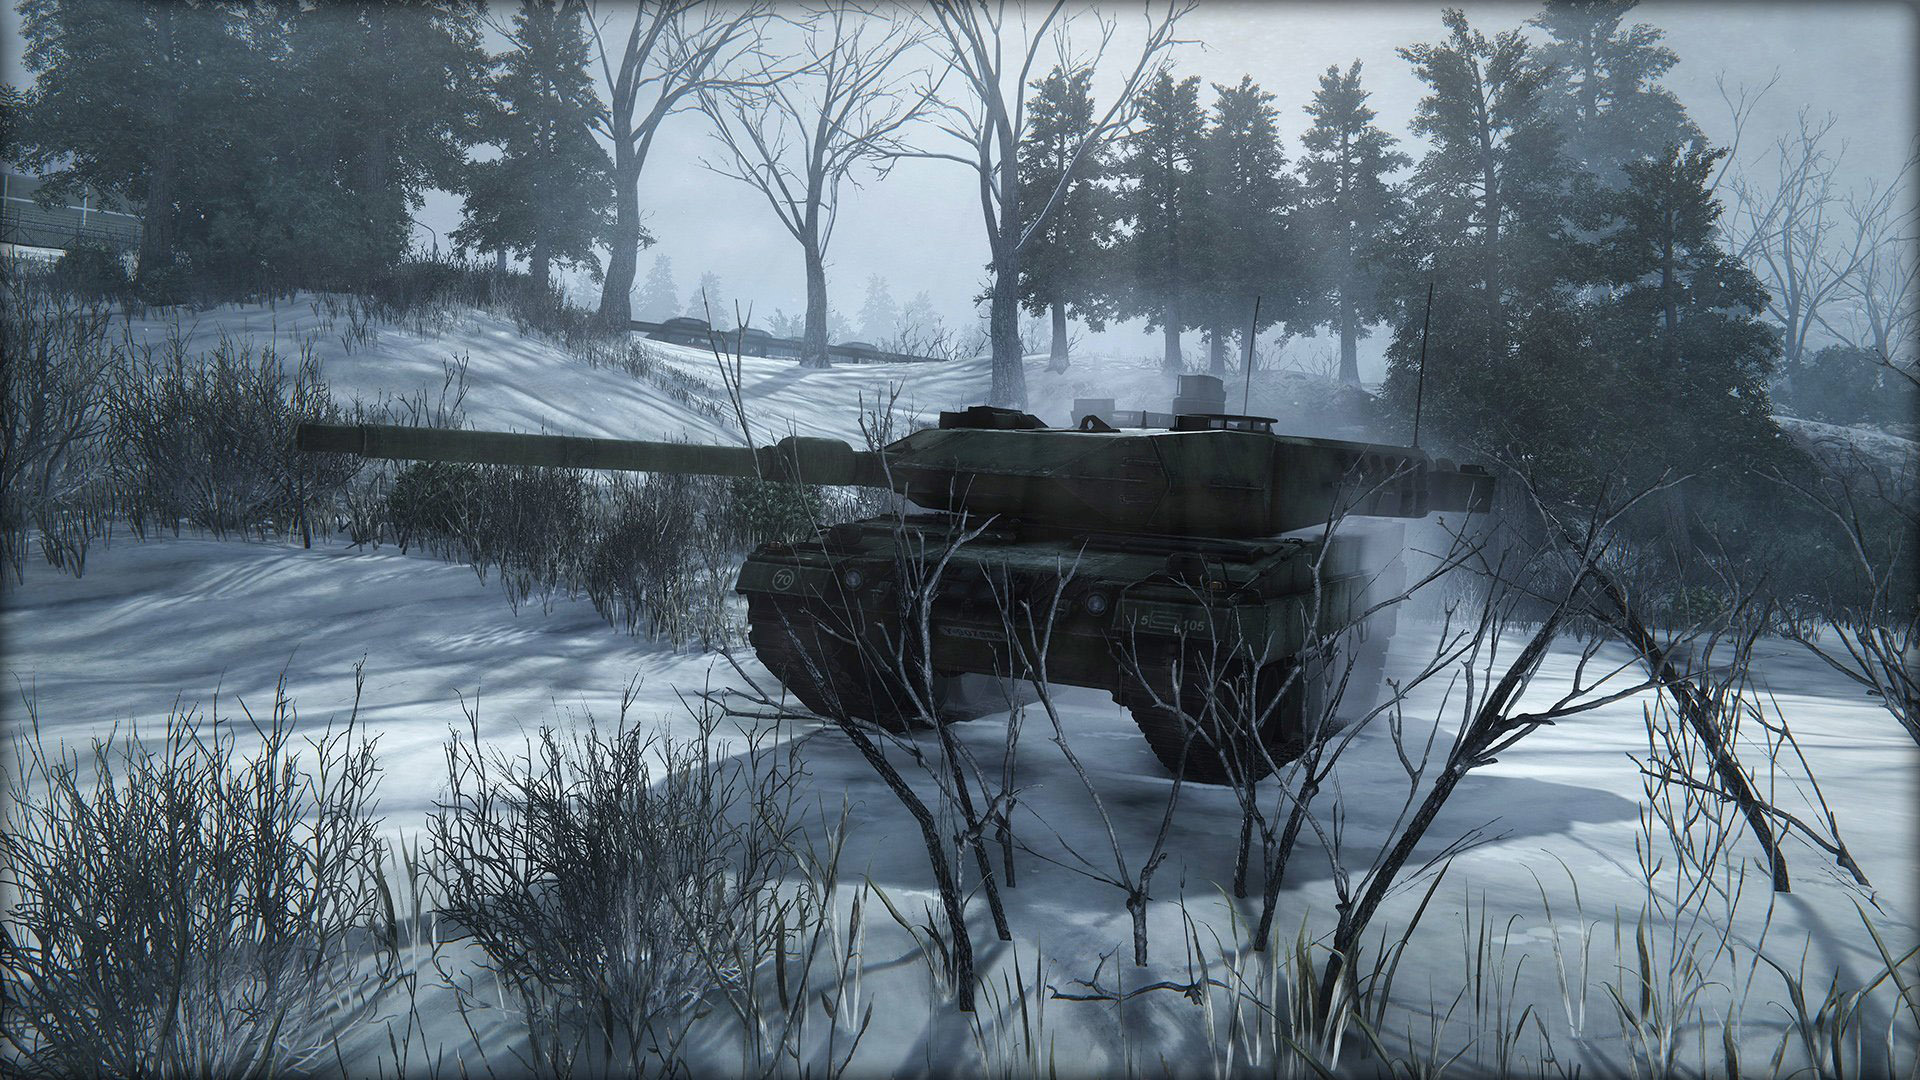 Badass Wallpapers For Iphone X Armored Warfare Snow Hd Wallpaper Hd Latest Wallpapers